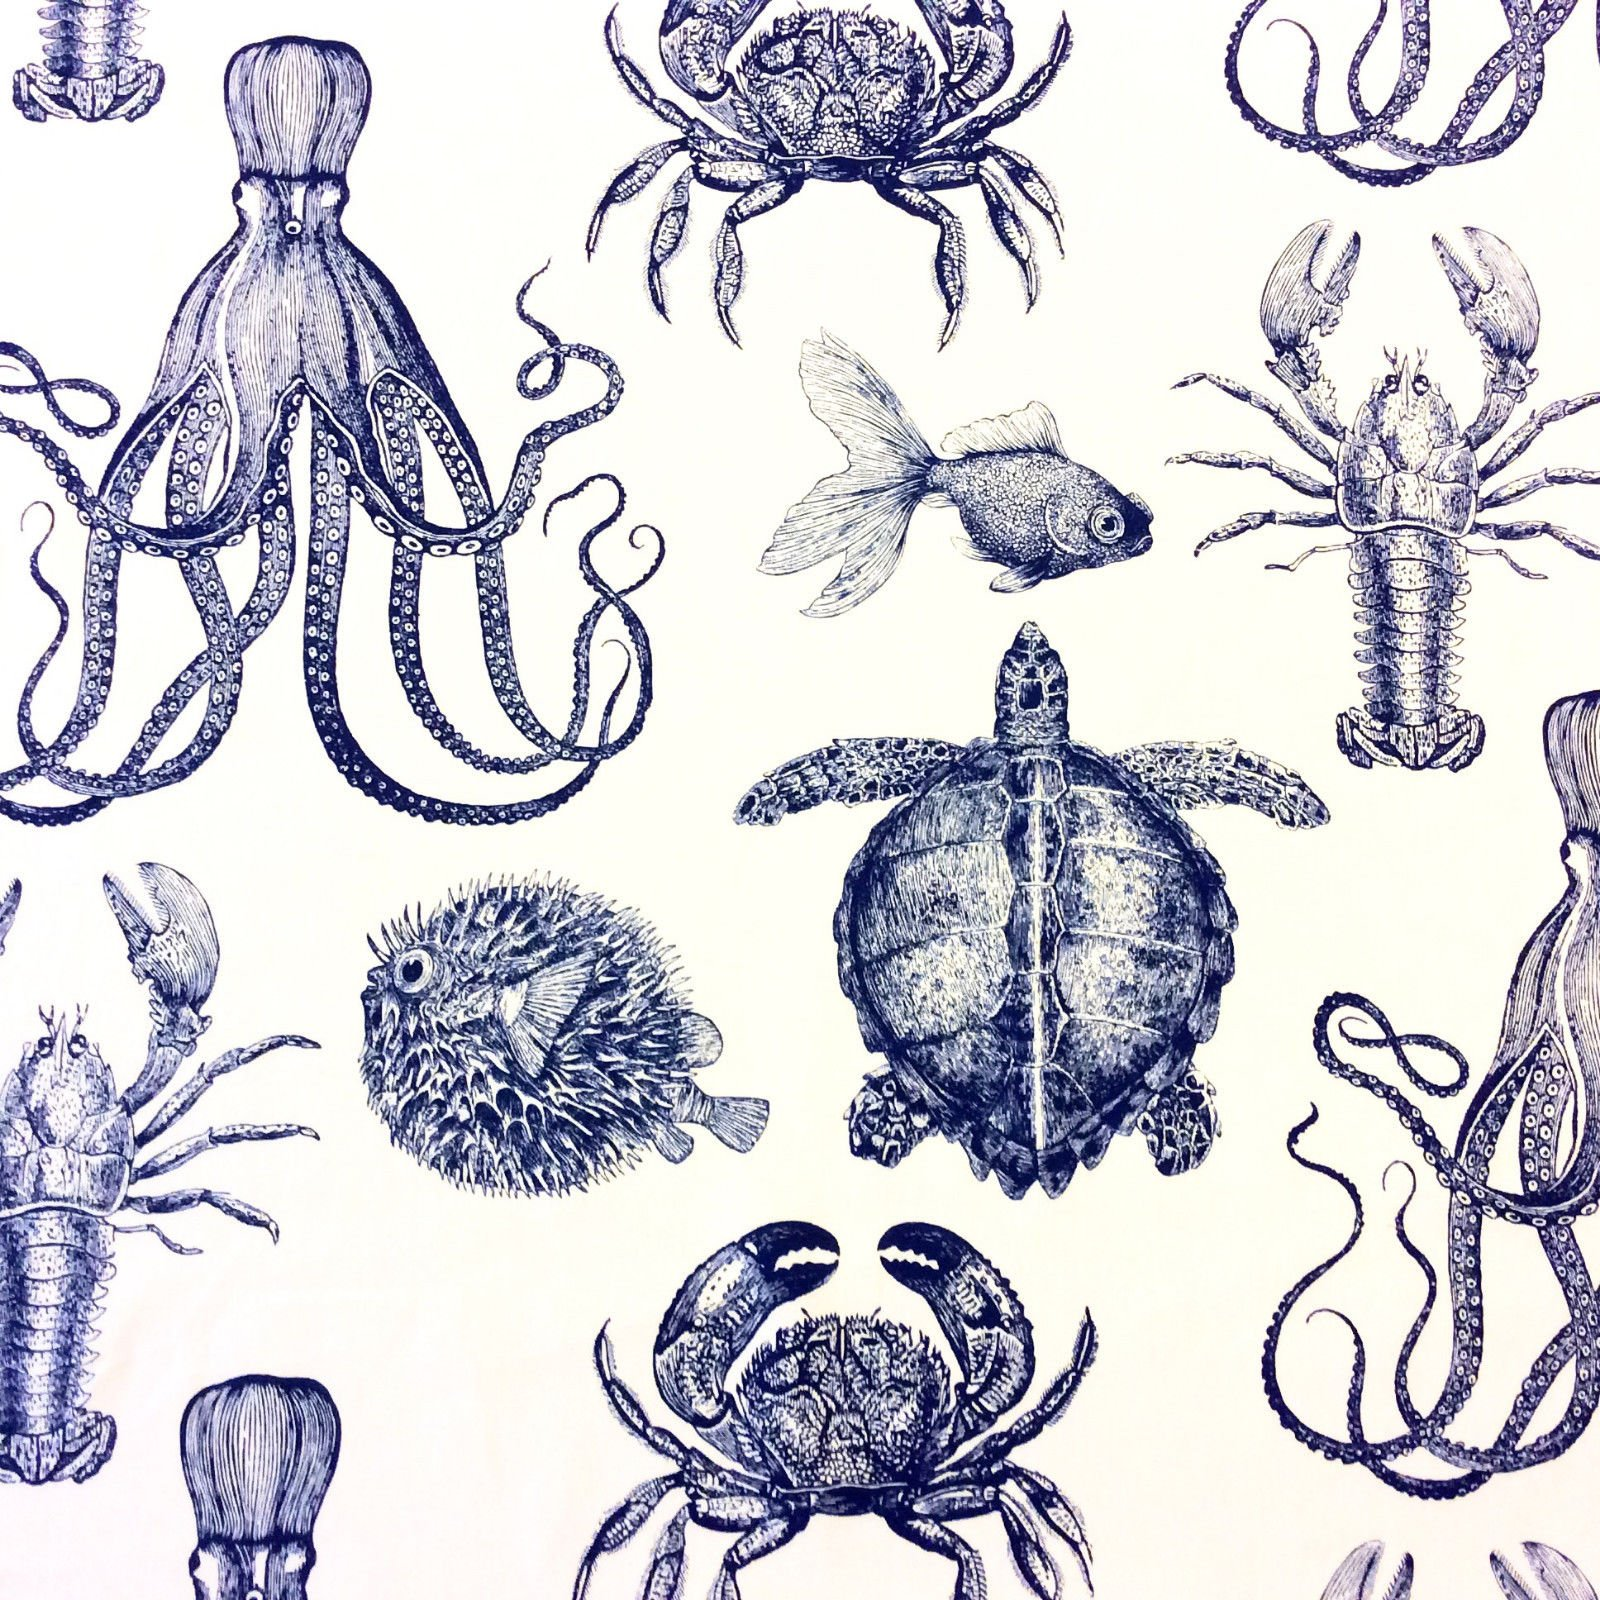 Thomas Paul Sealife Lobster Crab Octopus Turtle Illustrated Life Print Heavy Weight Cotton Fabric Indigo DSO102 OR133